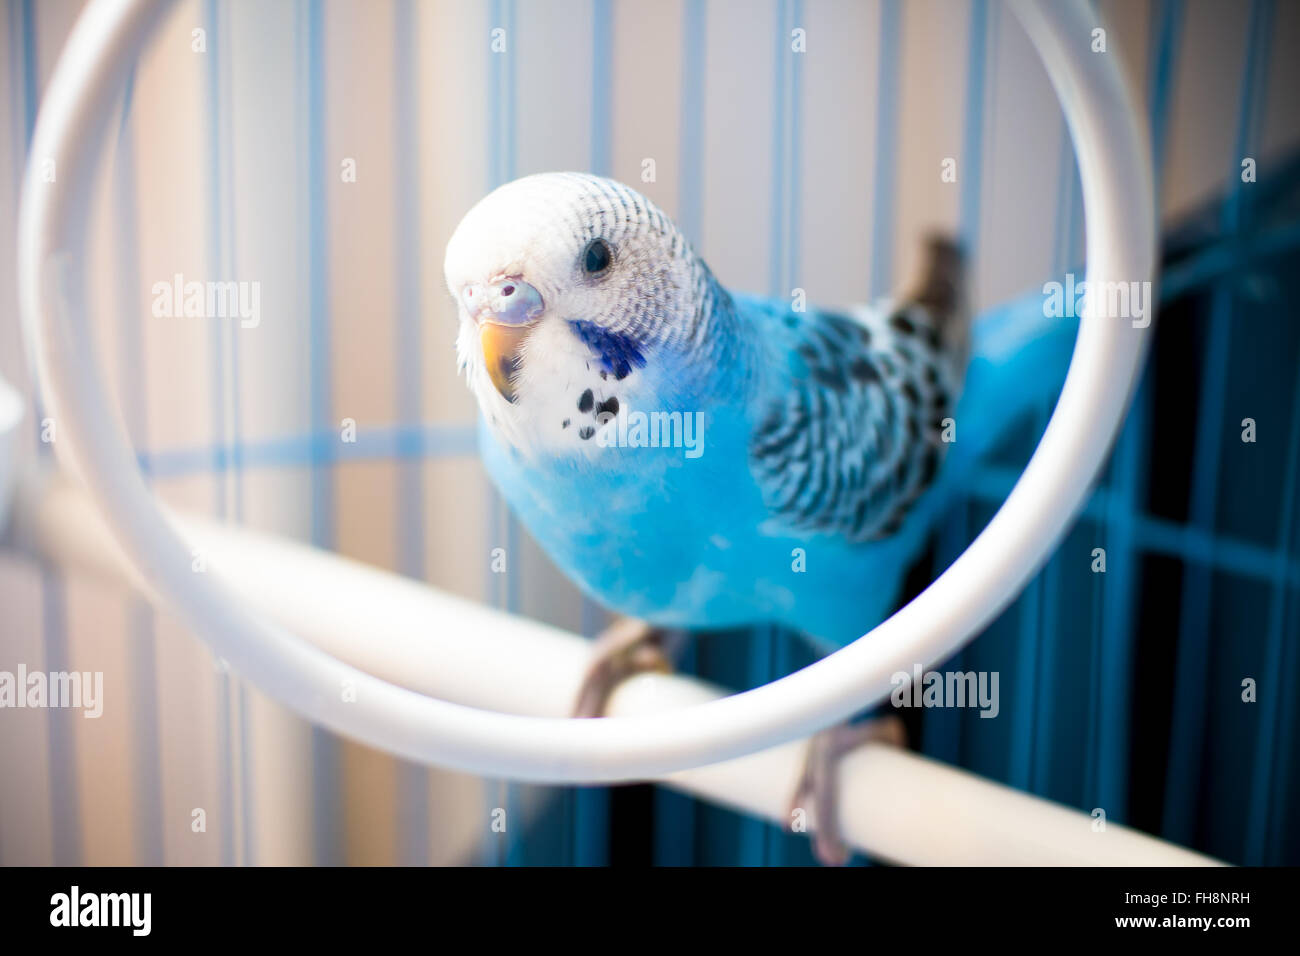 Portrait of a blue, male baby budgie, In a cage. Shallow depth of field - Stock Image